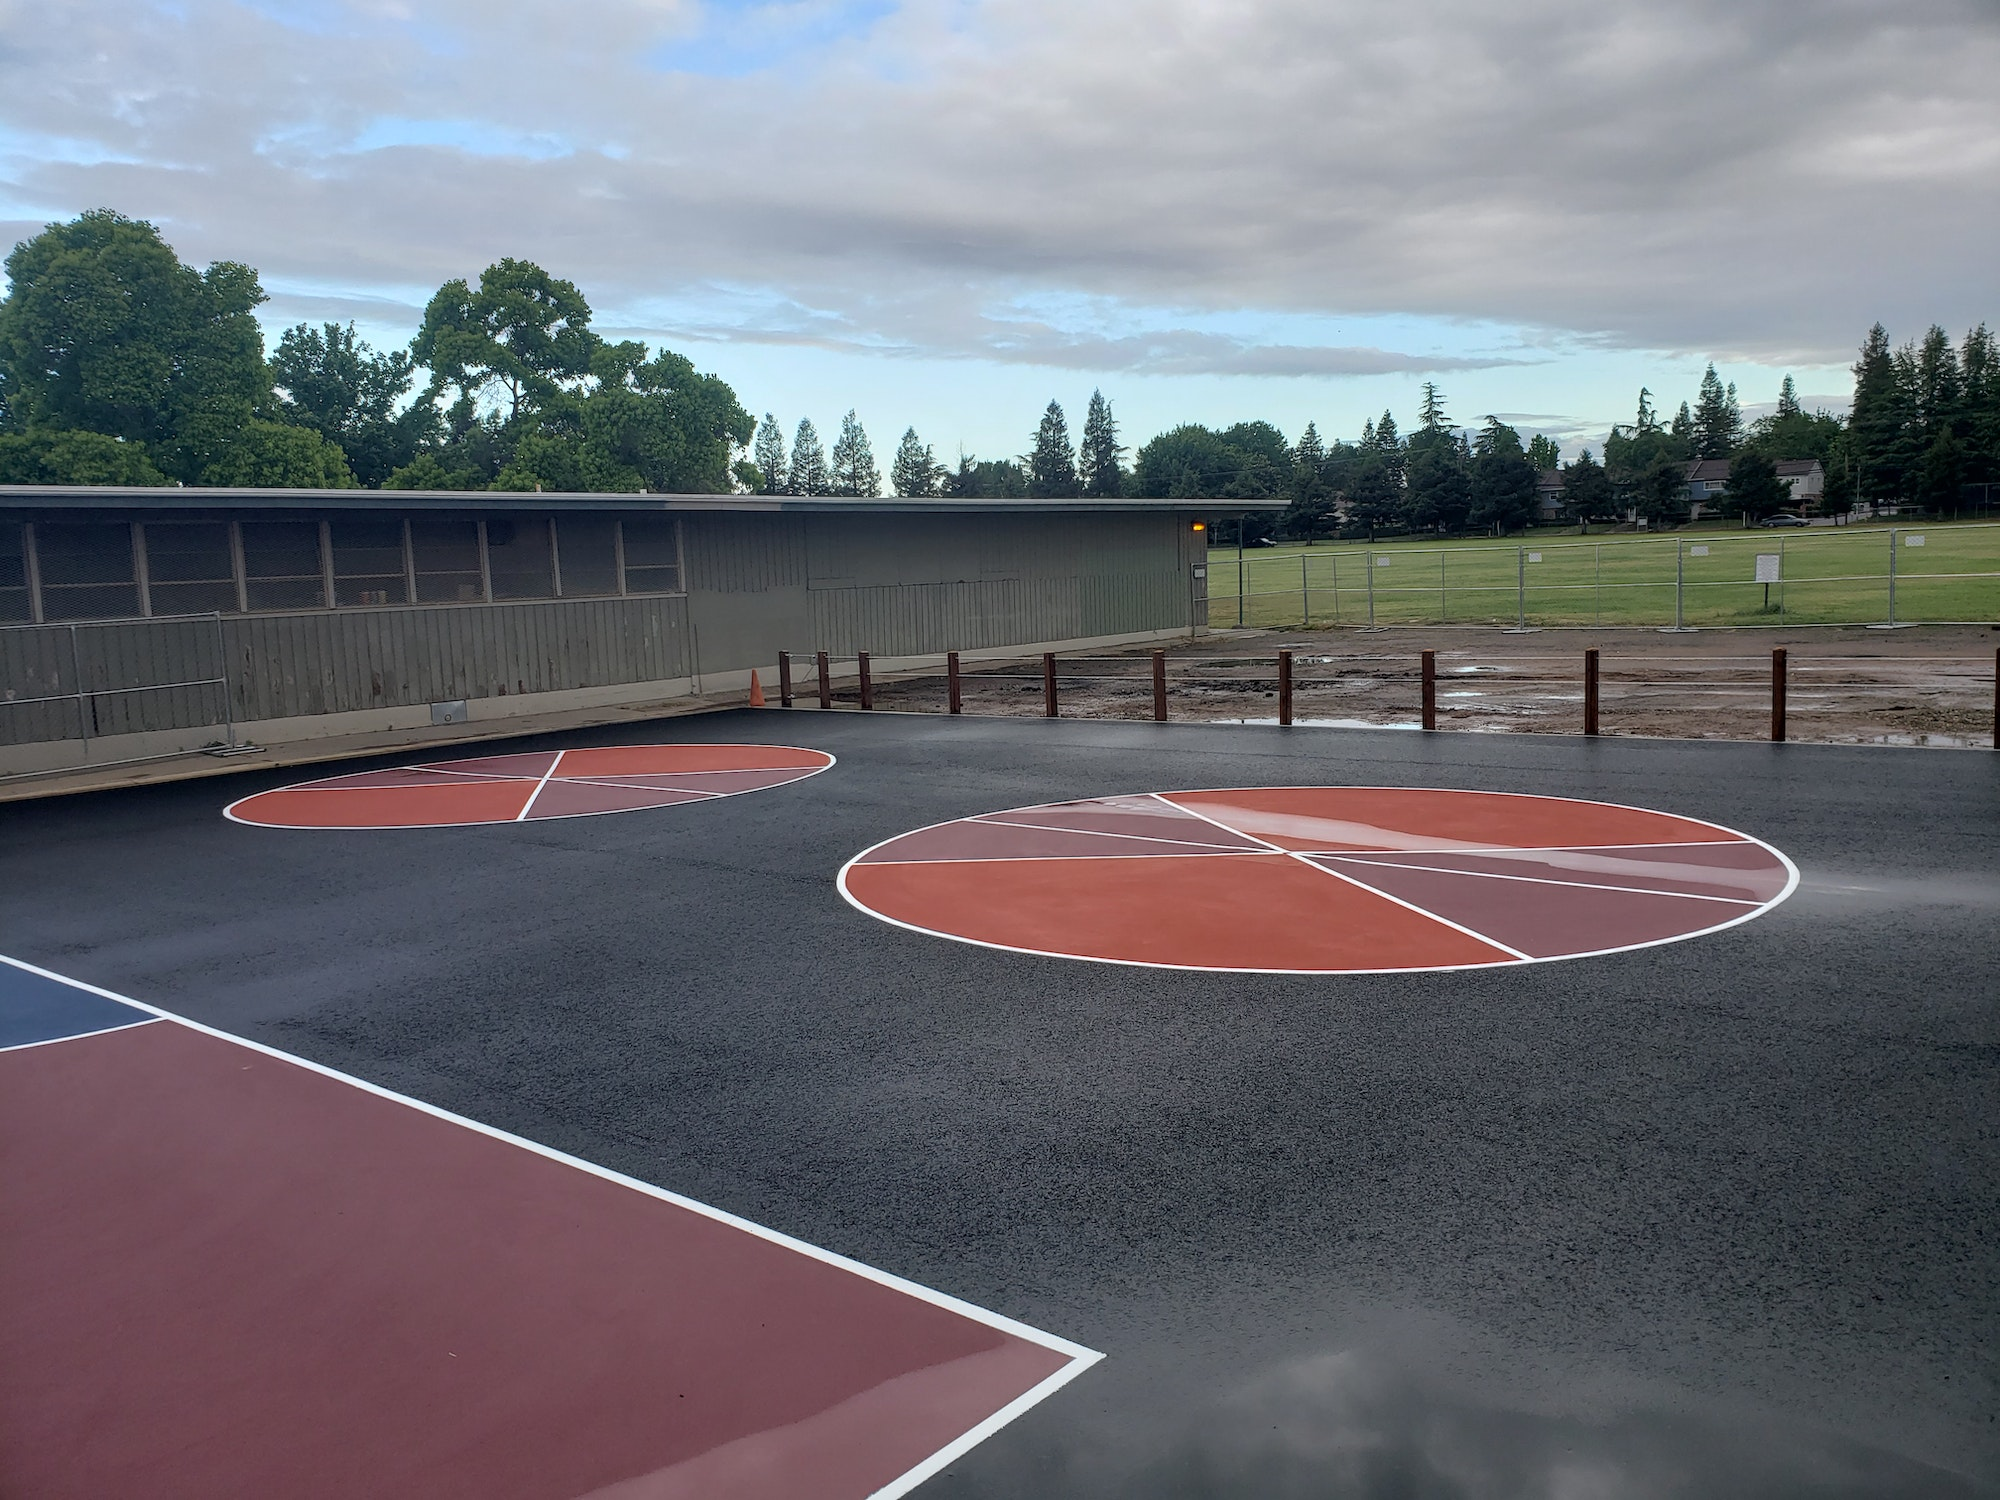 May contain: sports, basketball court, basketball, sport, team sport, and team